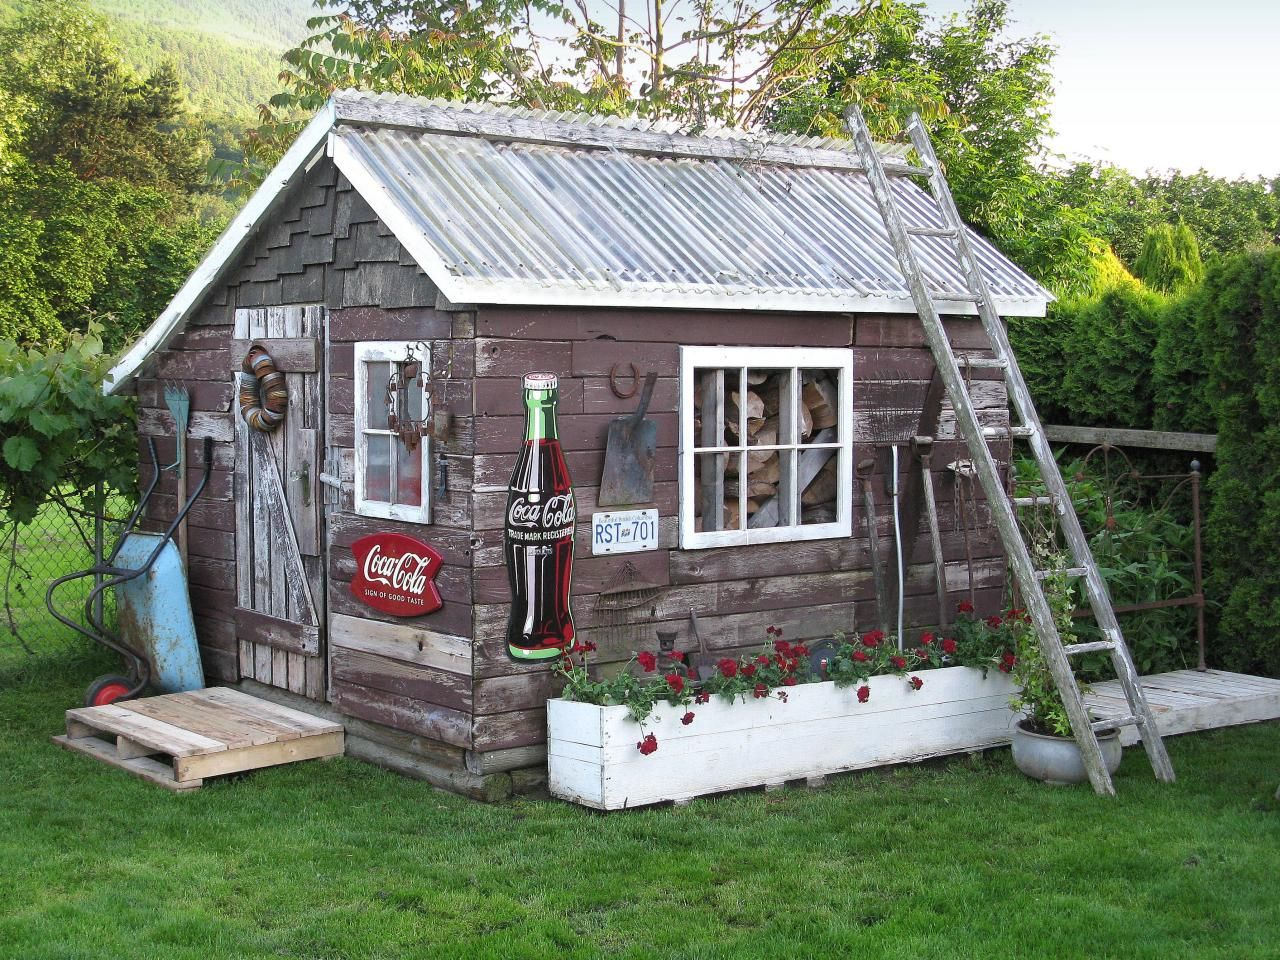 Best A Tin Roof Tops This Rustic Backyard Shed That Features Distressed Painted Siding And Vintage 400 x 300